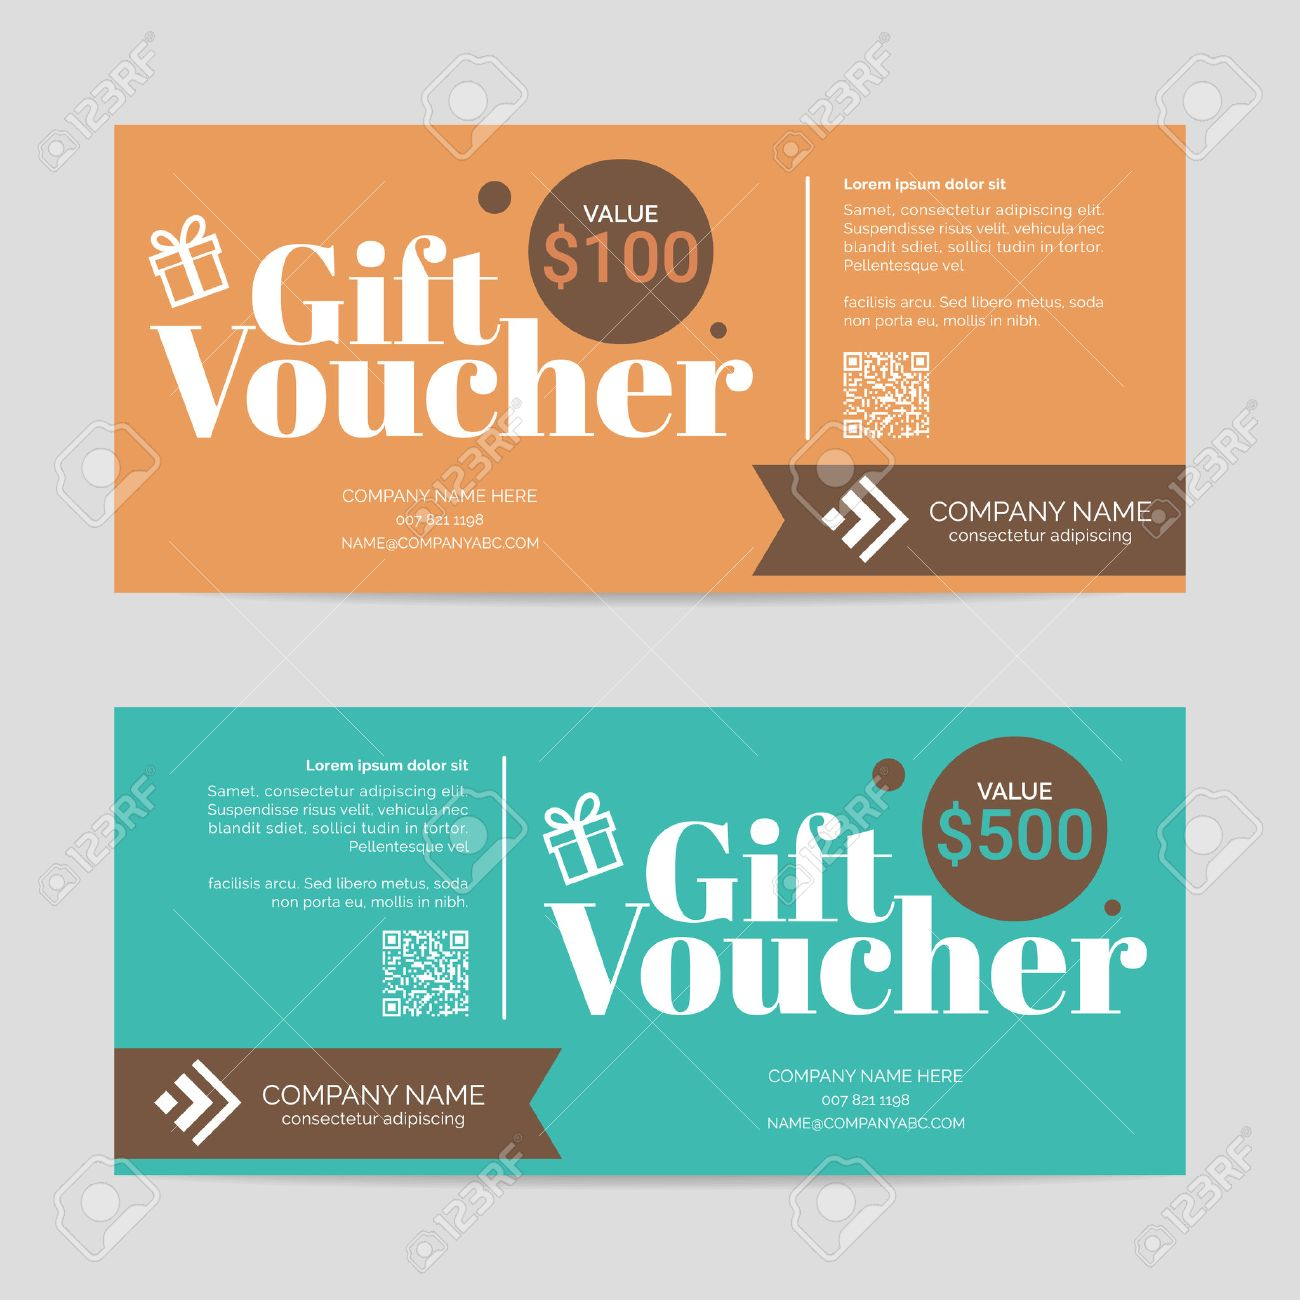 gift voucher template eps10 vector format royalty cliparts gift voucher template eps10 vector format stock vector 48123713